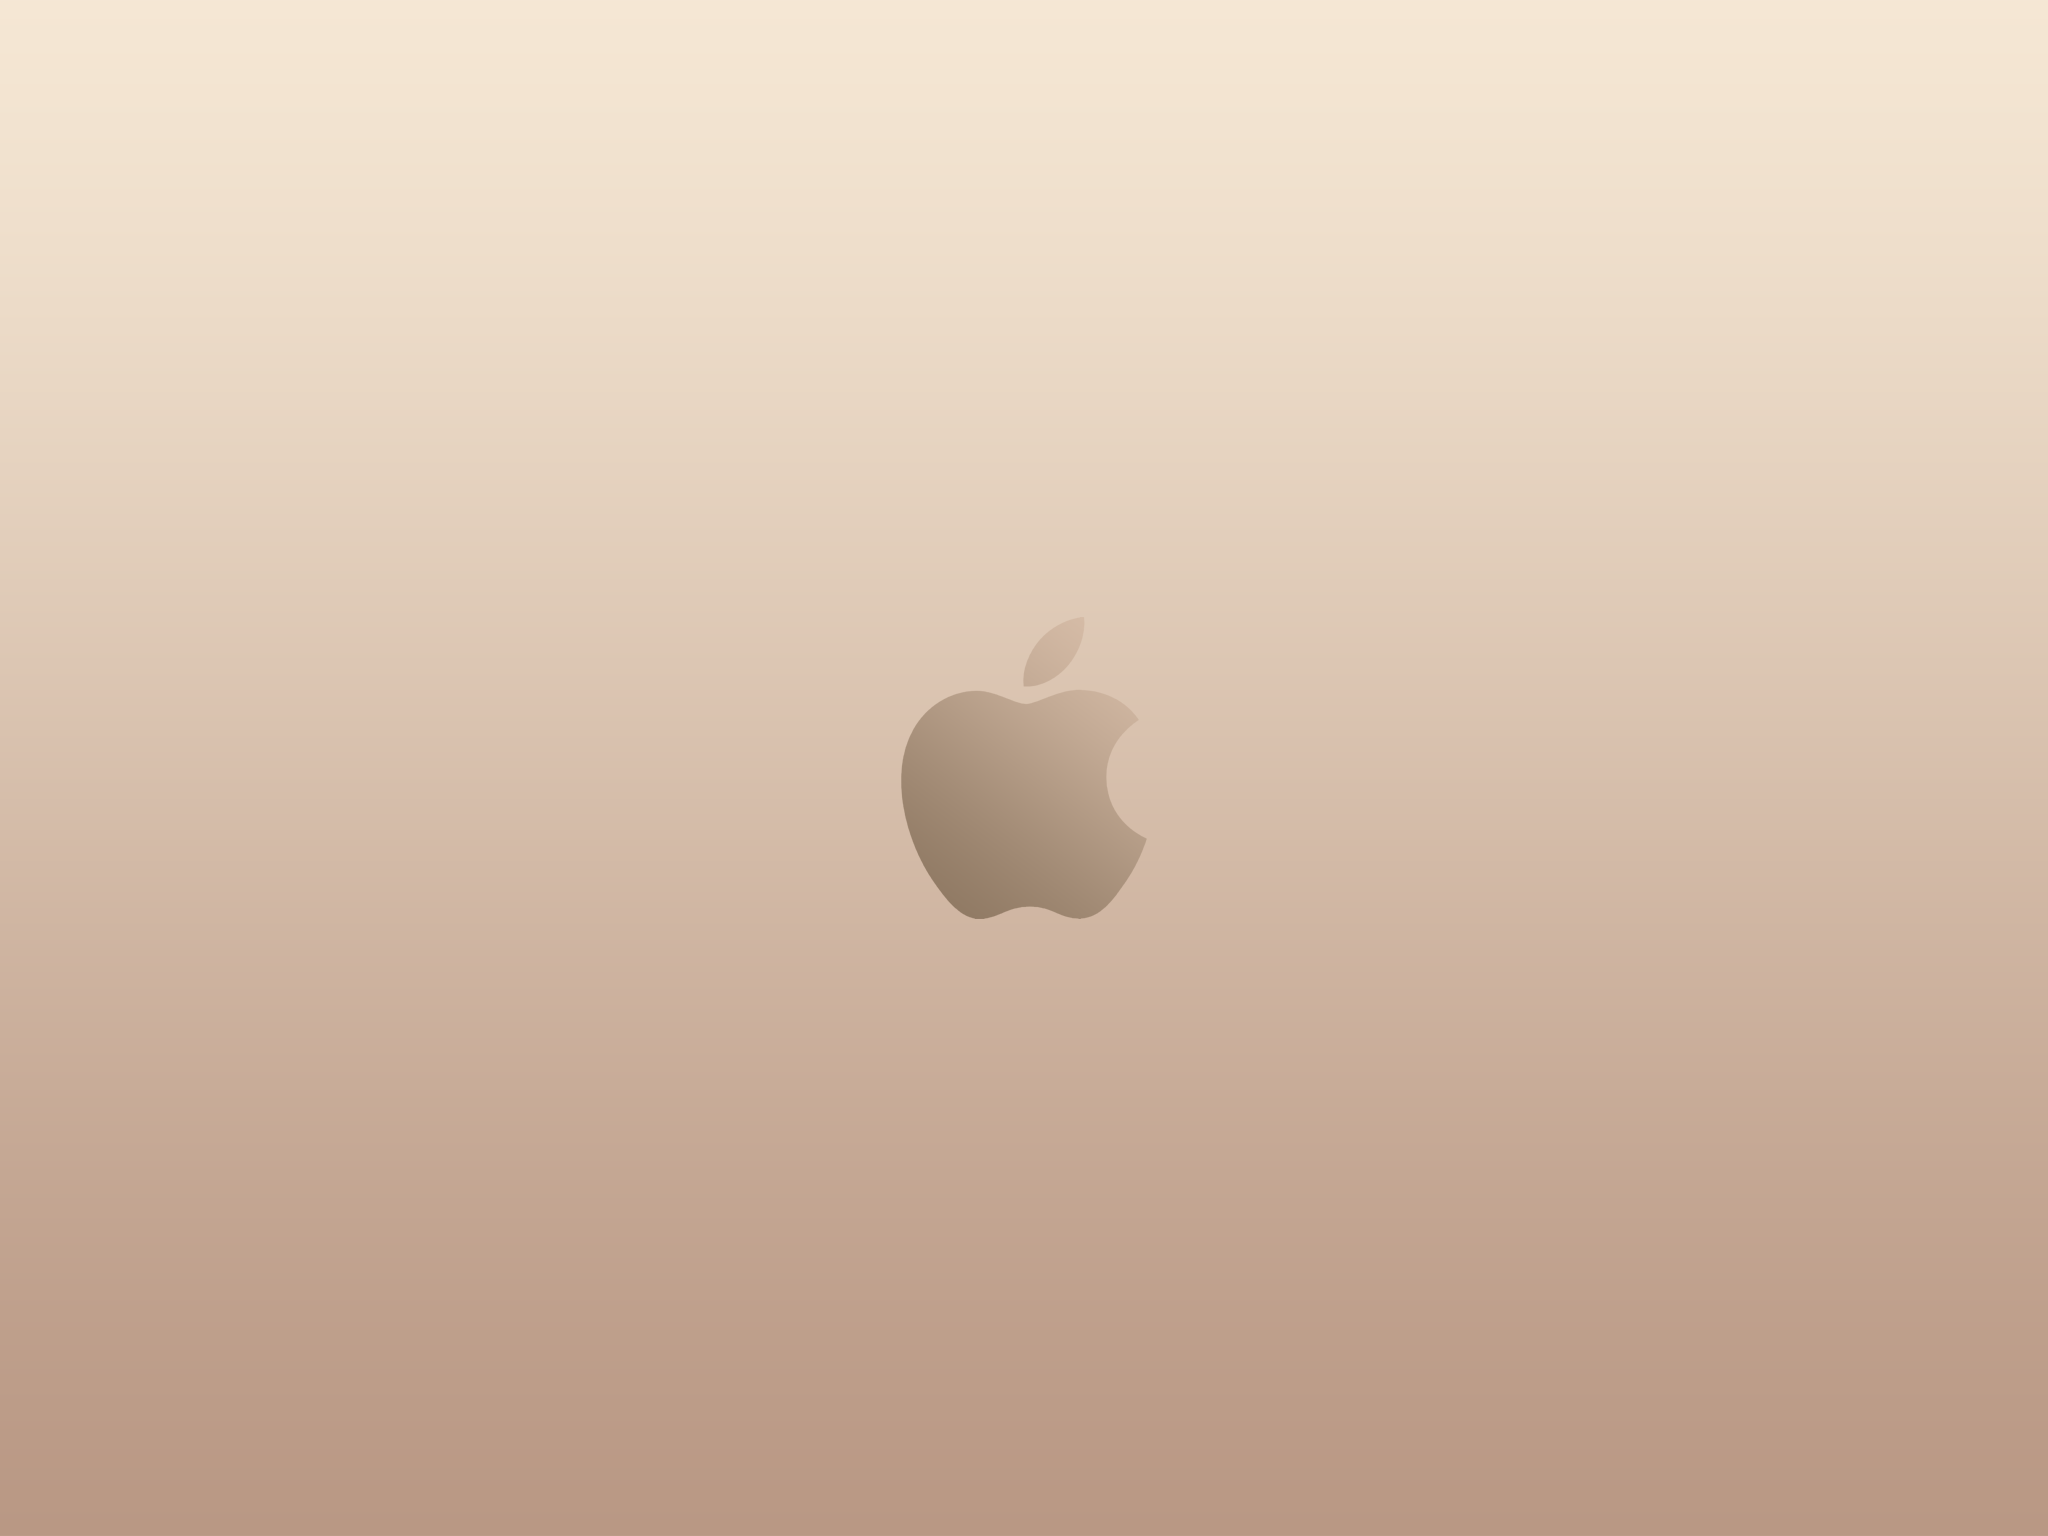 apple logo wallpaper. apple logo gold wallpaper by superquanganh